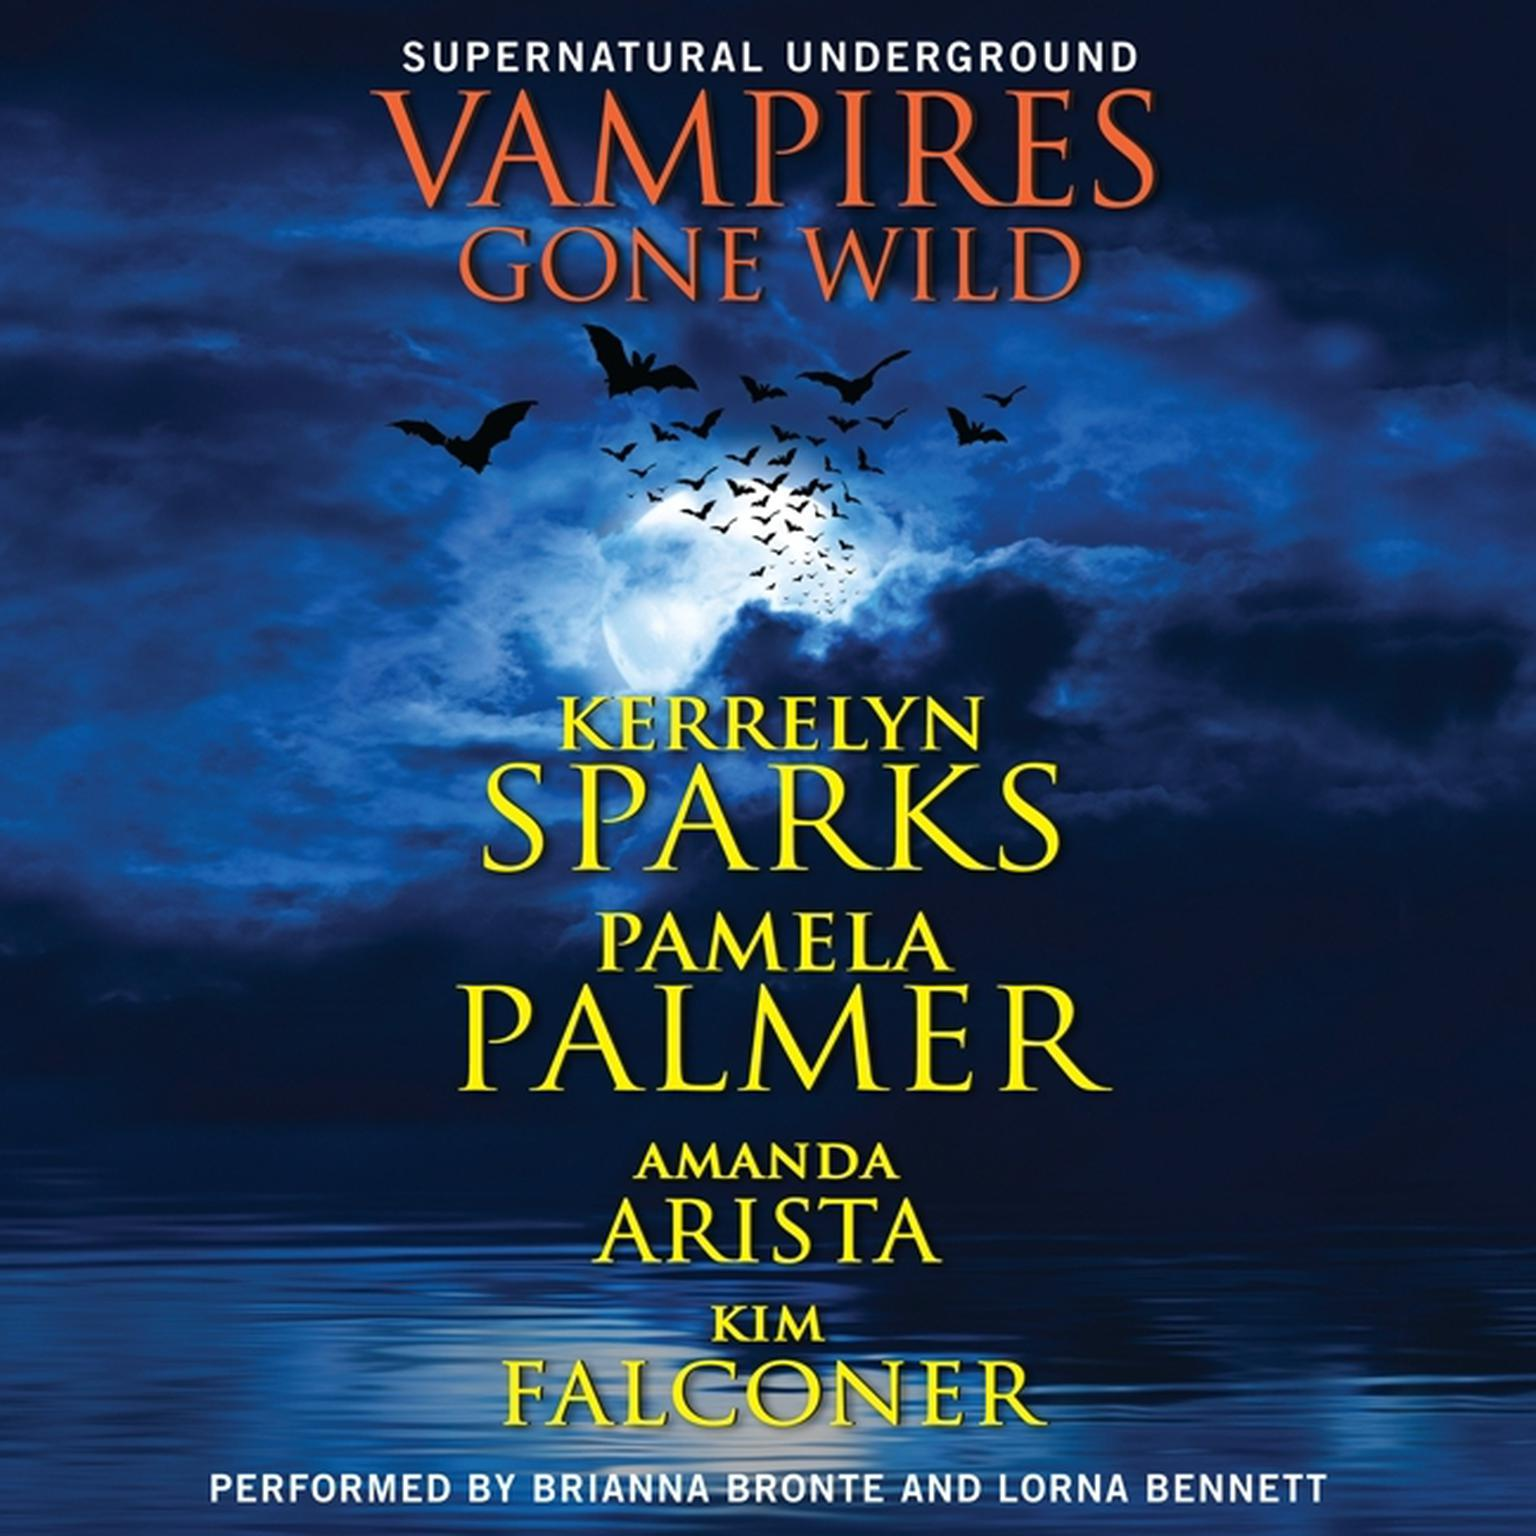 Printable Vampires Gone Wild (Supernatural Underground) Audiobook Cover Art